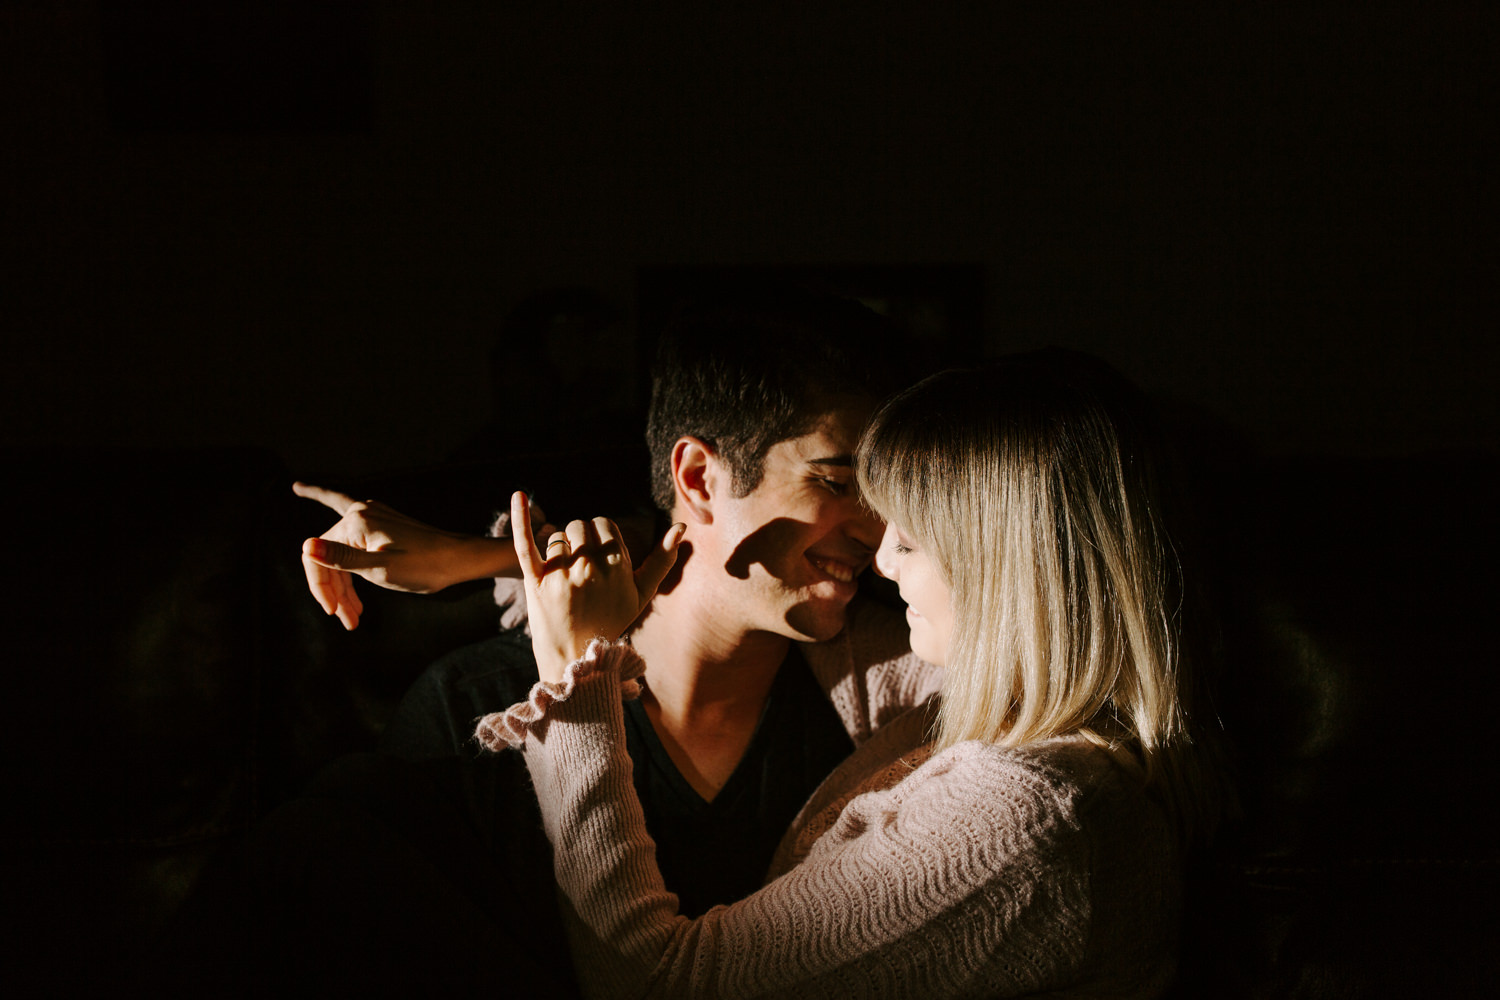 artificial-light-in-home-session-8.jpg